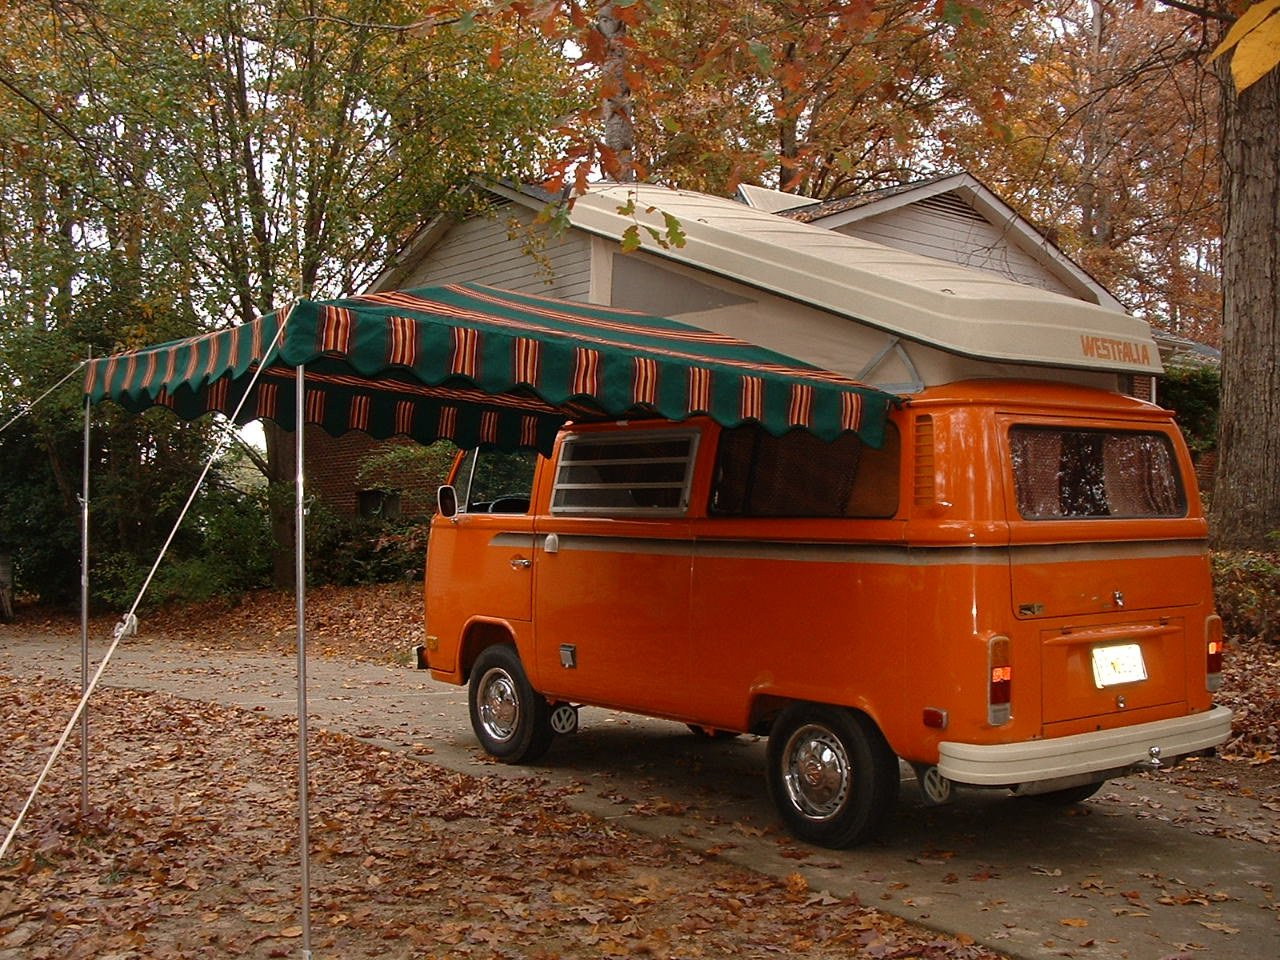 Vintage Awnings Brain Storming By The Lake With The